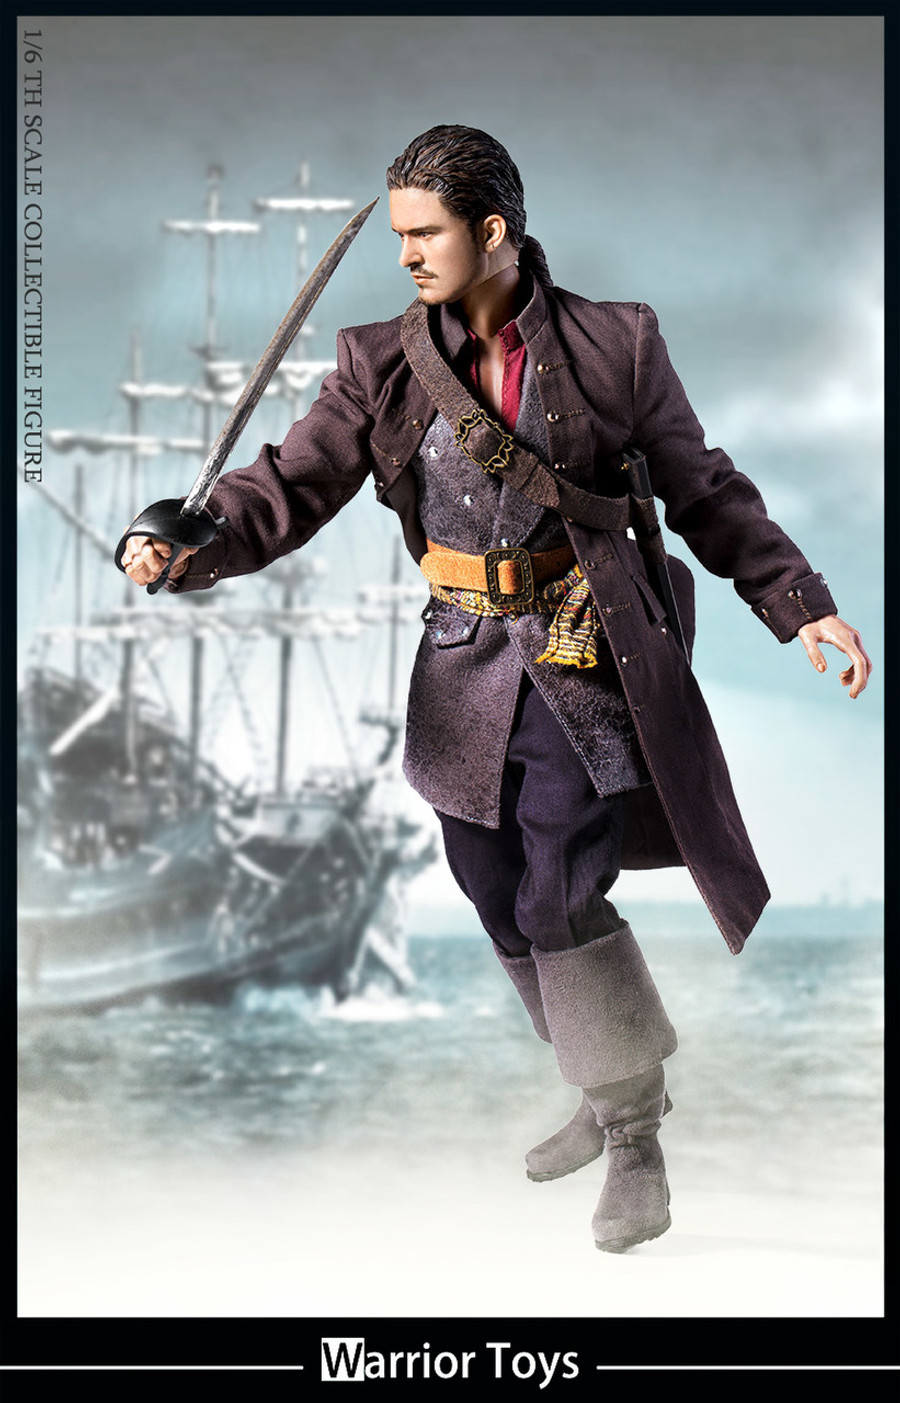 Warrior Toys - Pirate Captain